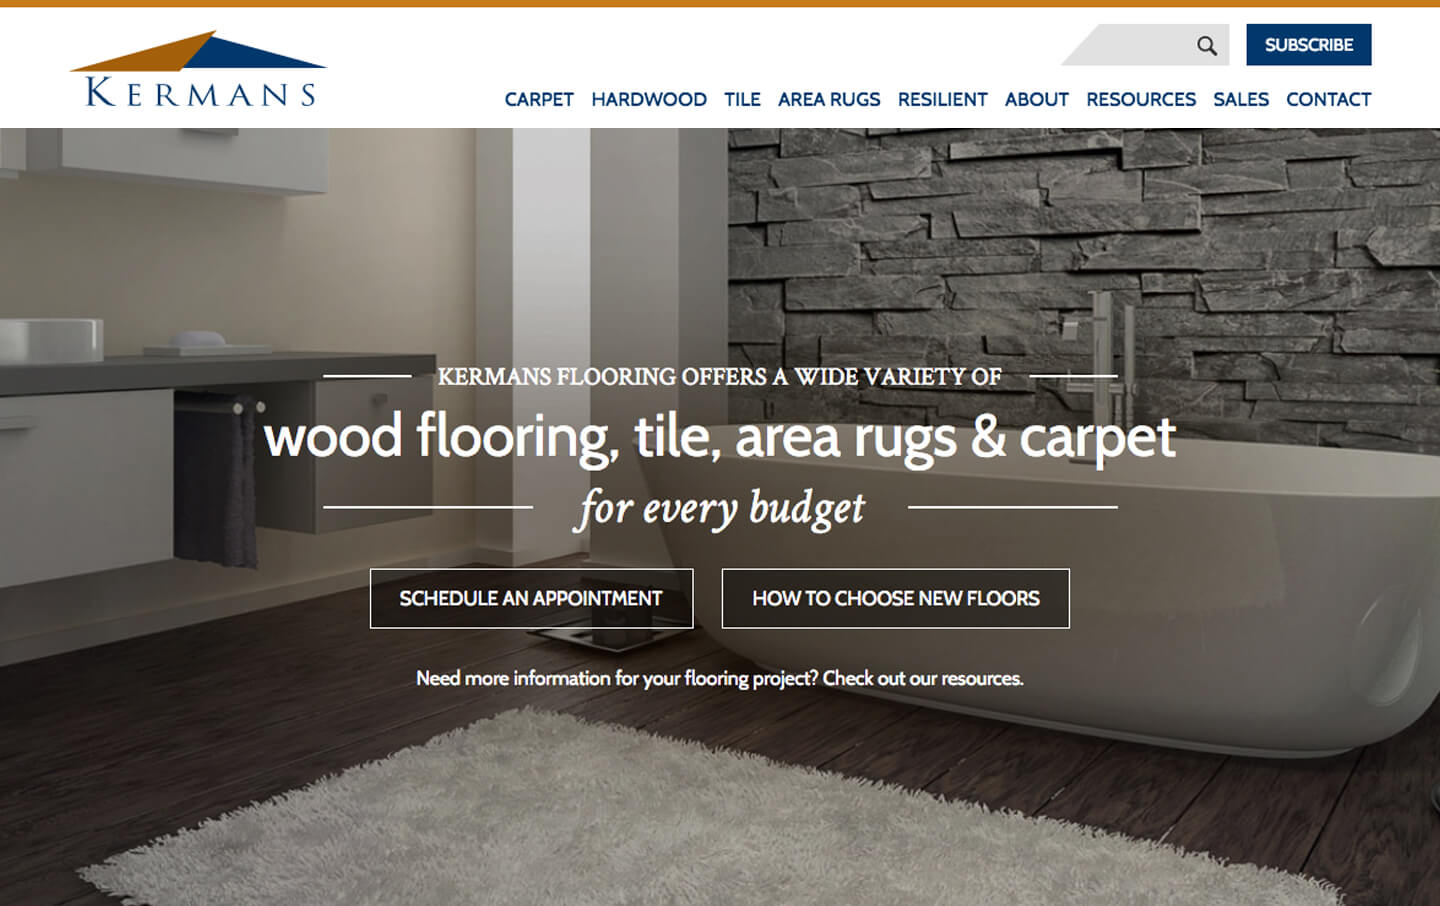 Kermans Flooring desktop homepage web design